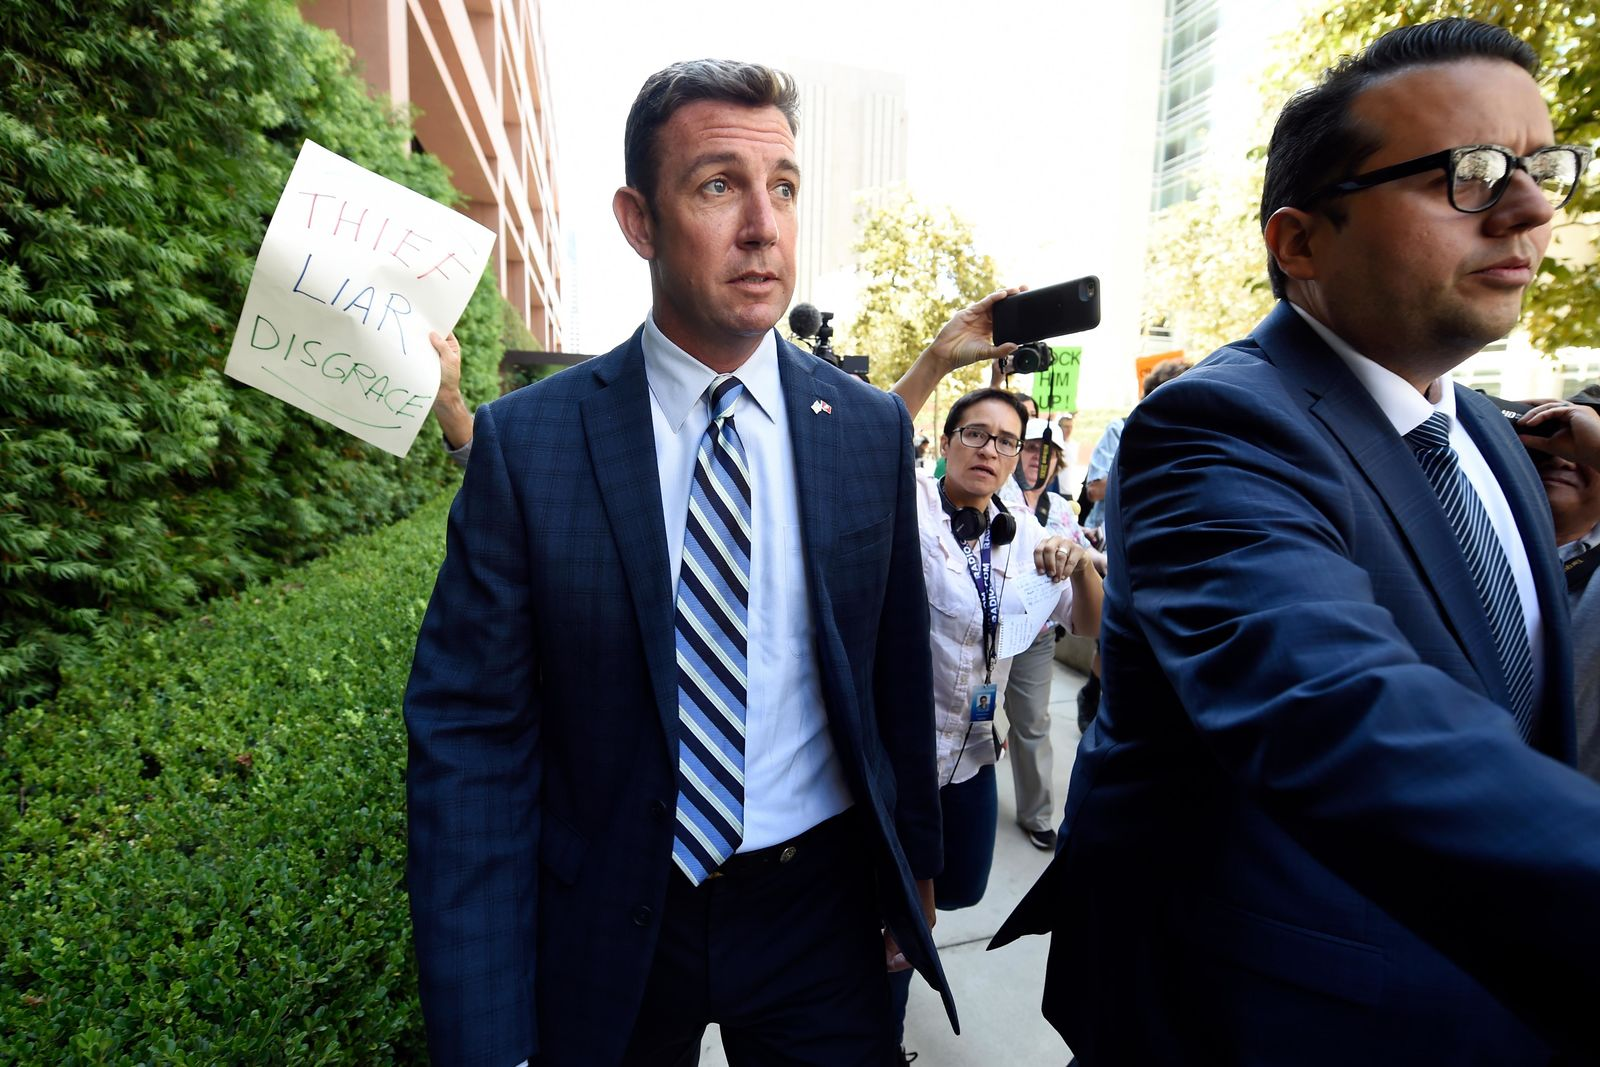 U.S. Rep. Duncan Hunter, center, leaves an arraignment hearing Thursday, Aug. 23, 2018, in San Diego. Hunter and his wife Margaret pleaded not guilty Thursday to charges they illegally used his campaign account for personal expenses. (AP Photo/Denis Poroy)